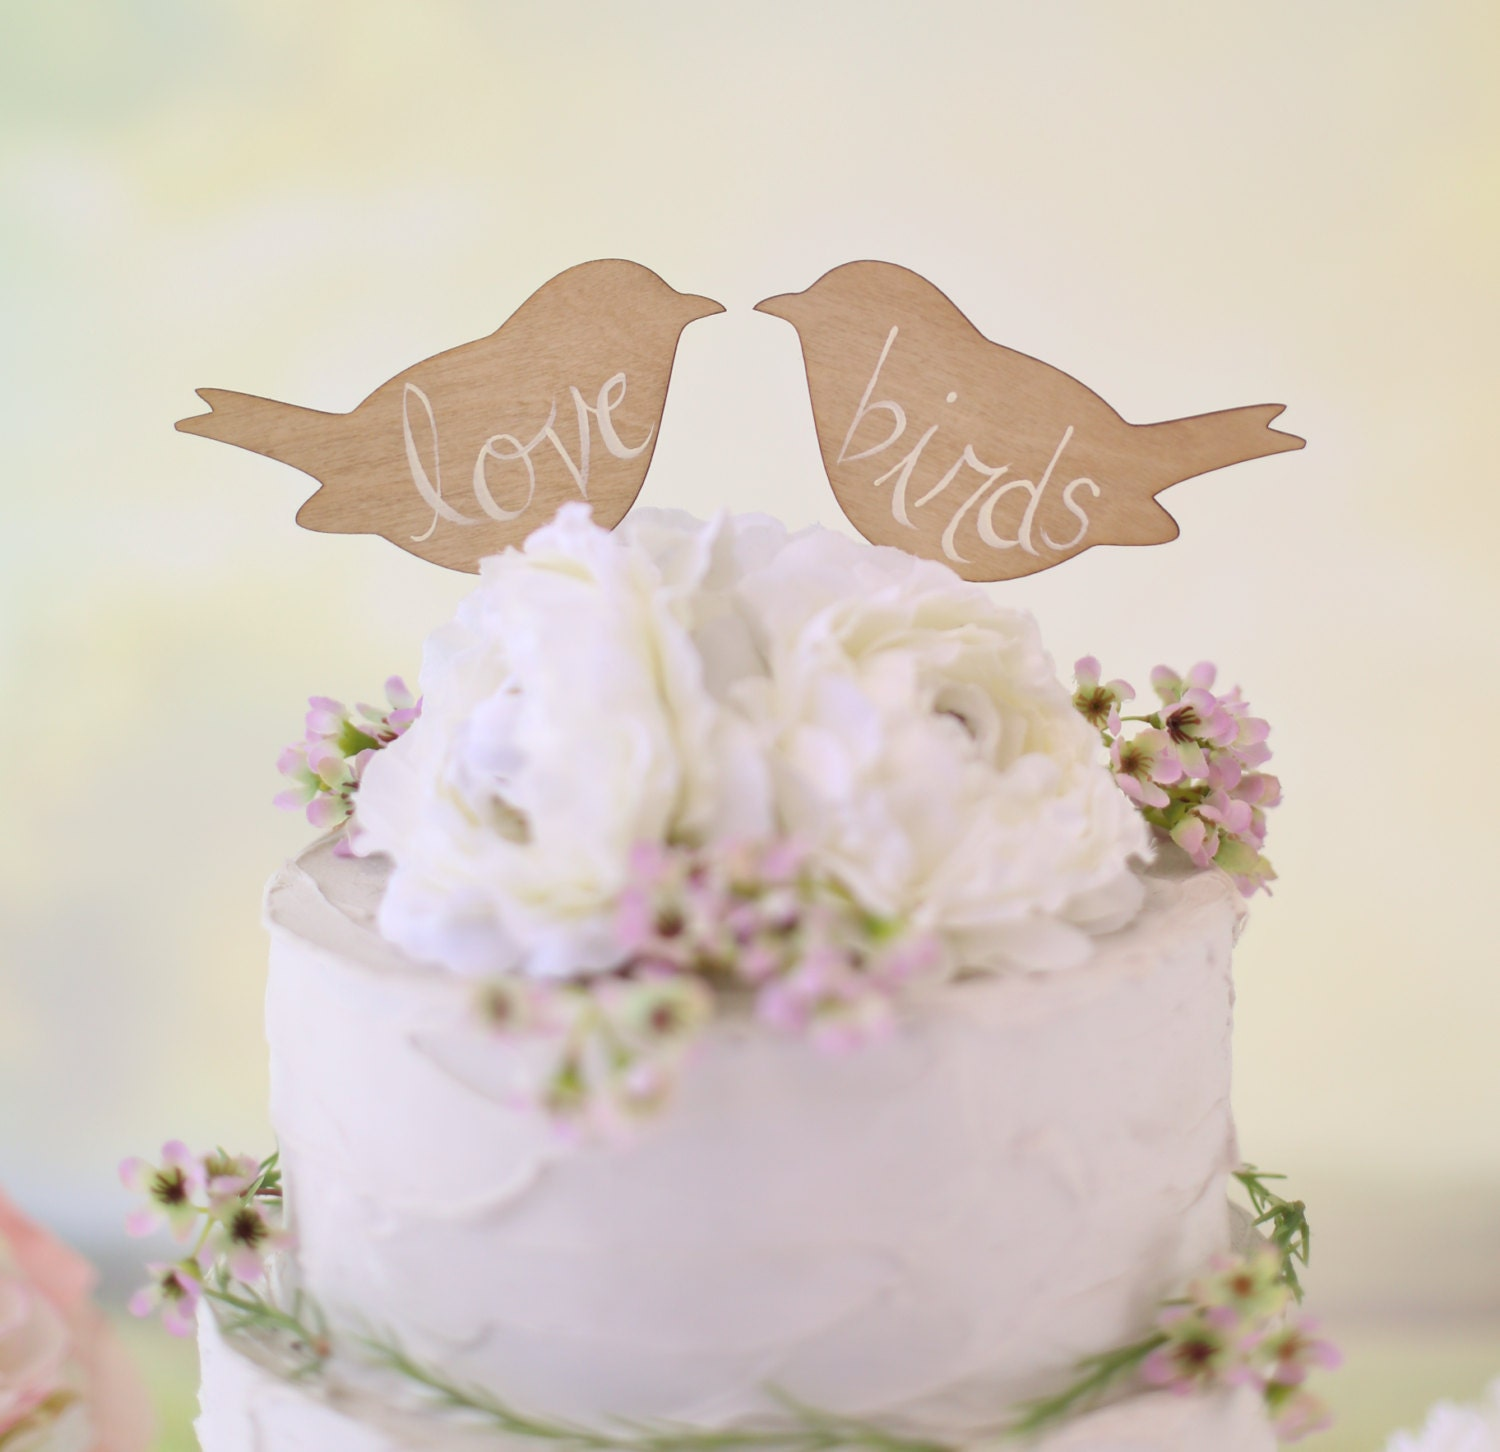 wedding cake with birds rustic wedding cake topper birds we do vintage chic decor 26824